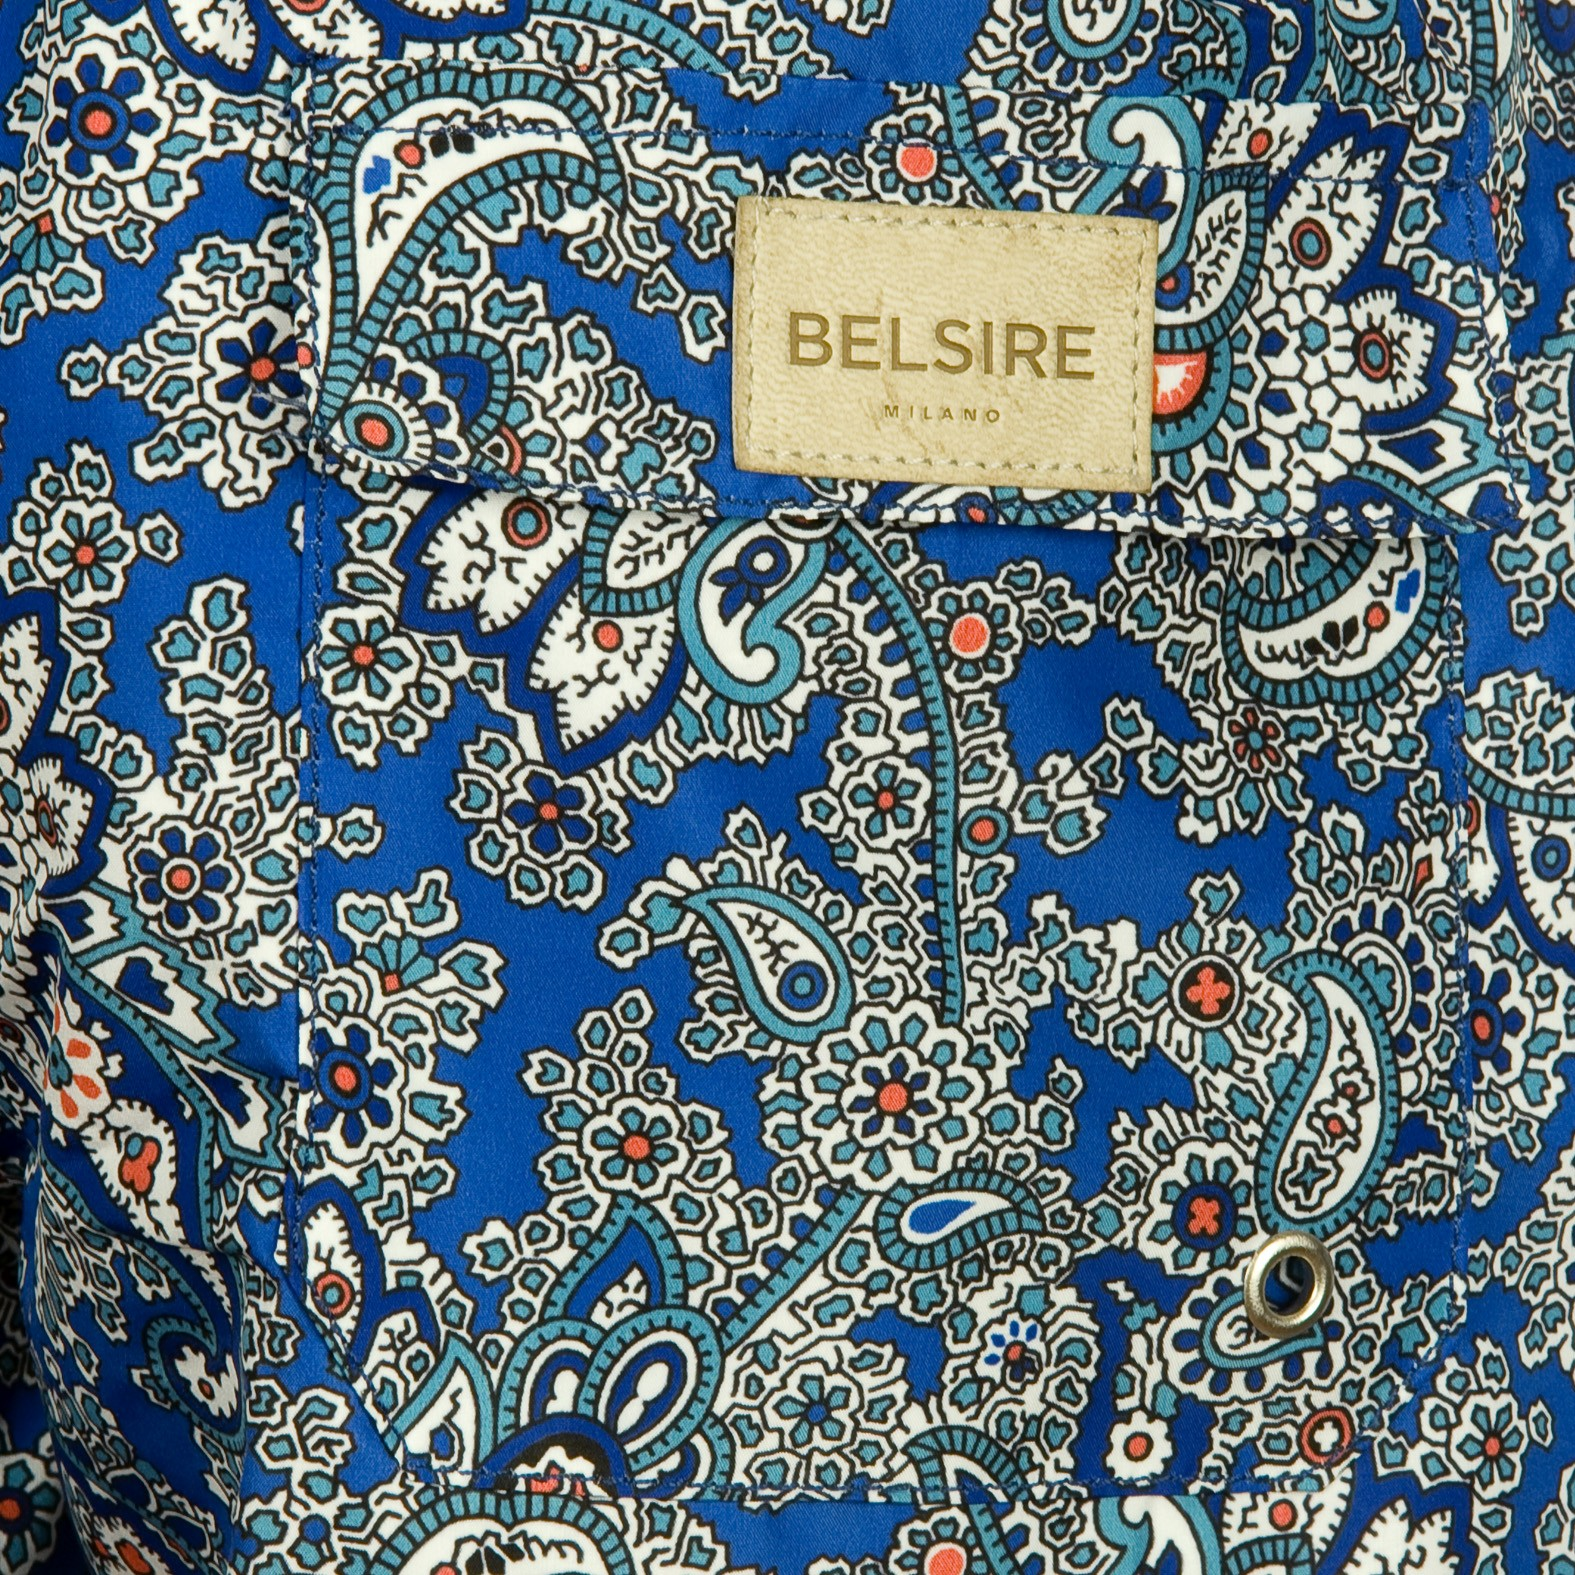 Dark Blue and Green Paisley Fast-Dry Polyester Swimming Shorts BELSIRE MILANO Cheap The Cheapest t99Lqp6L